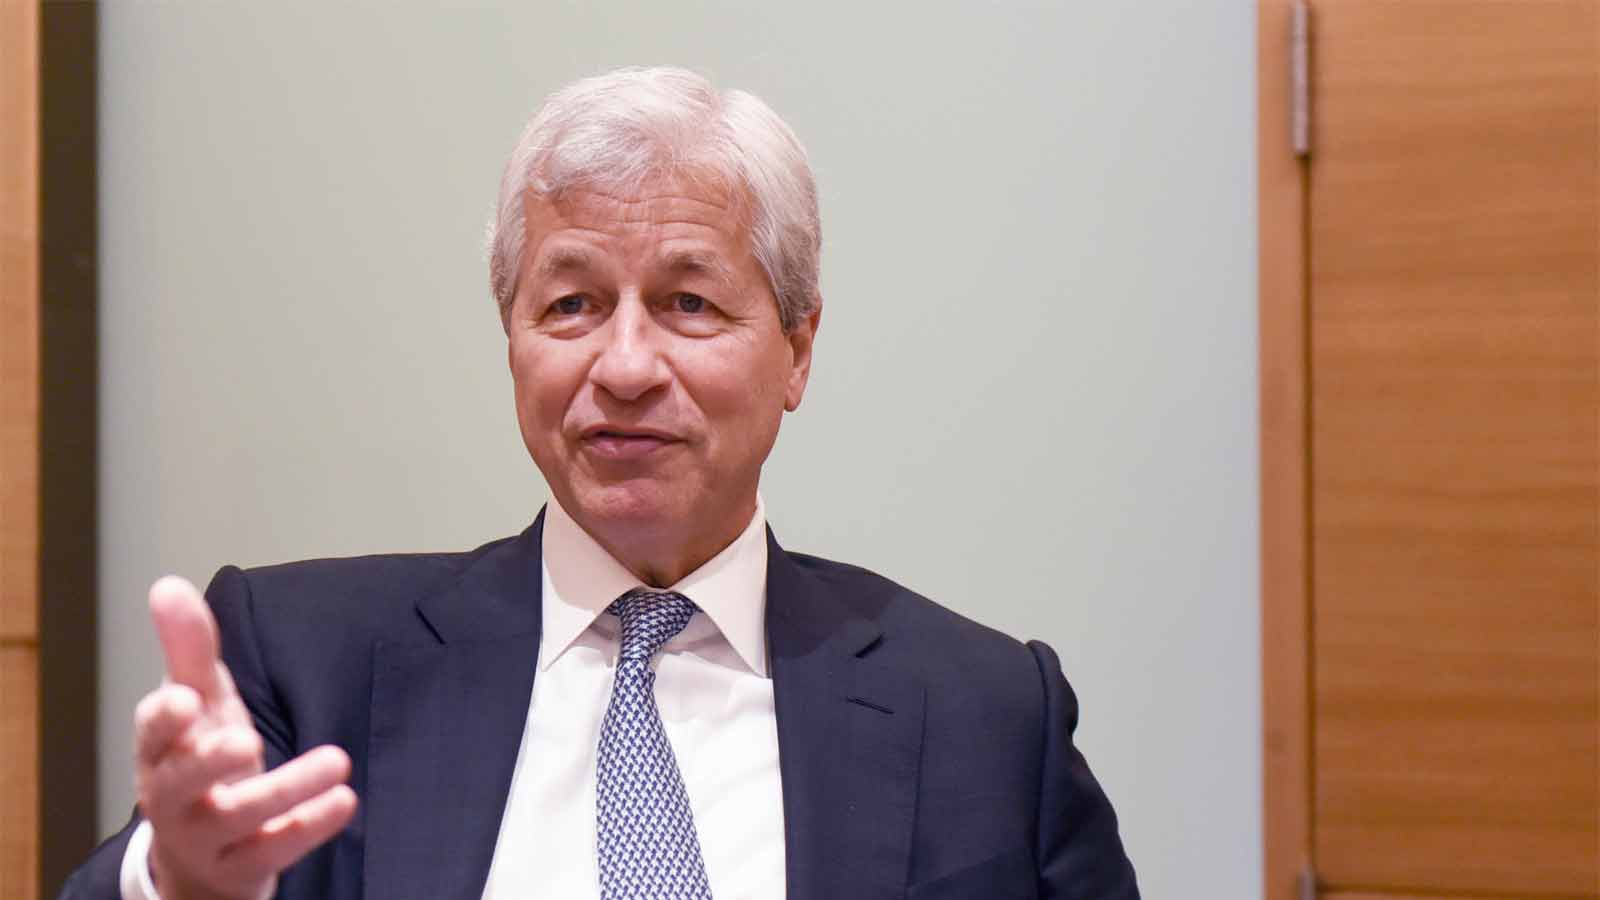 5-6-gdp-growth-is-not-terrible-jp-morgan-chairman-jamie-dimon